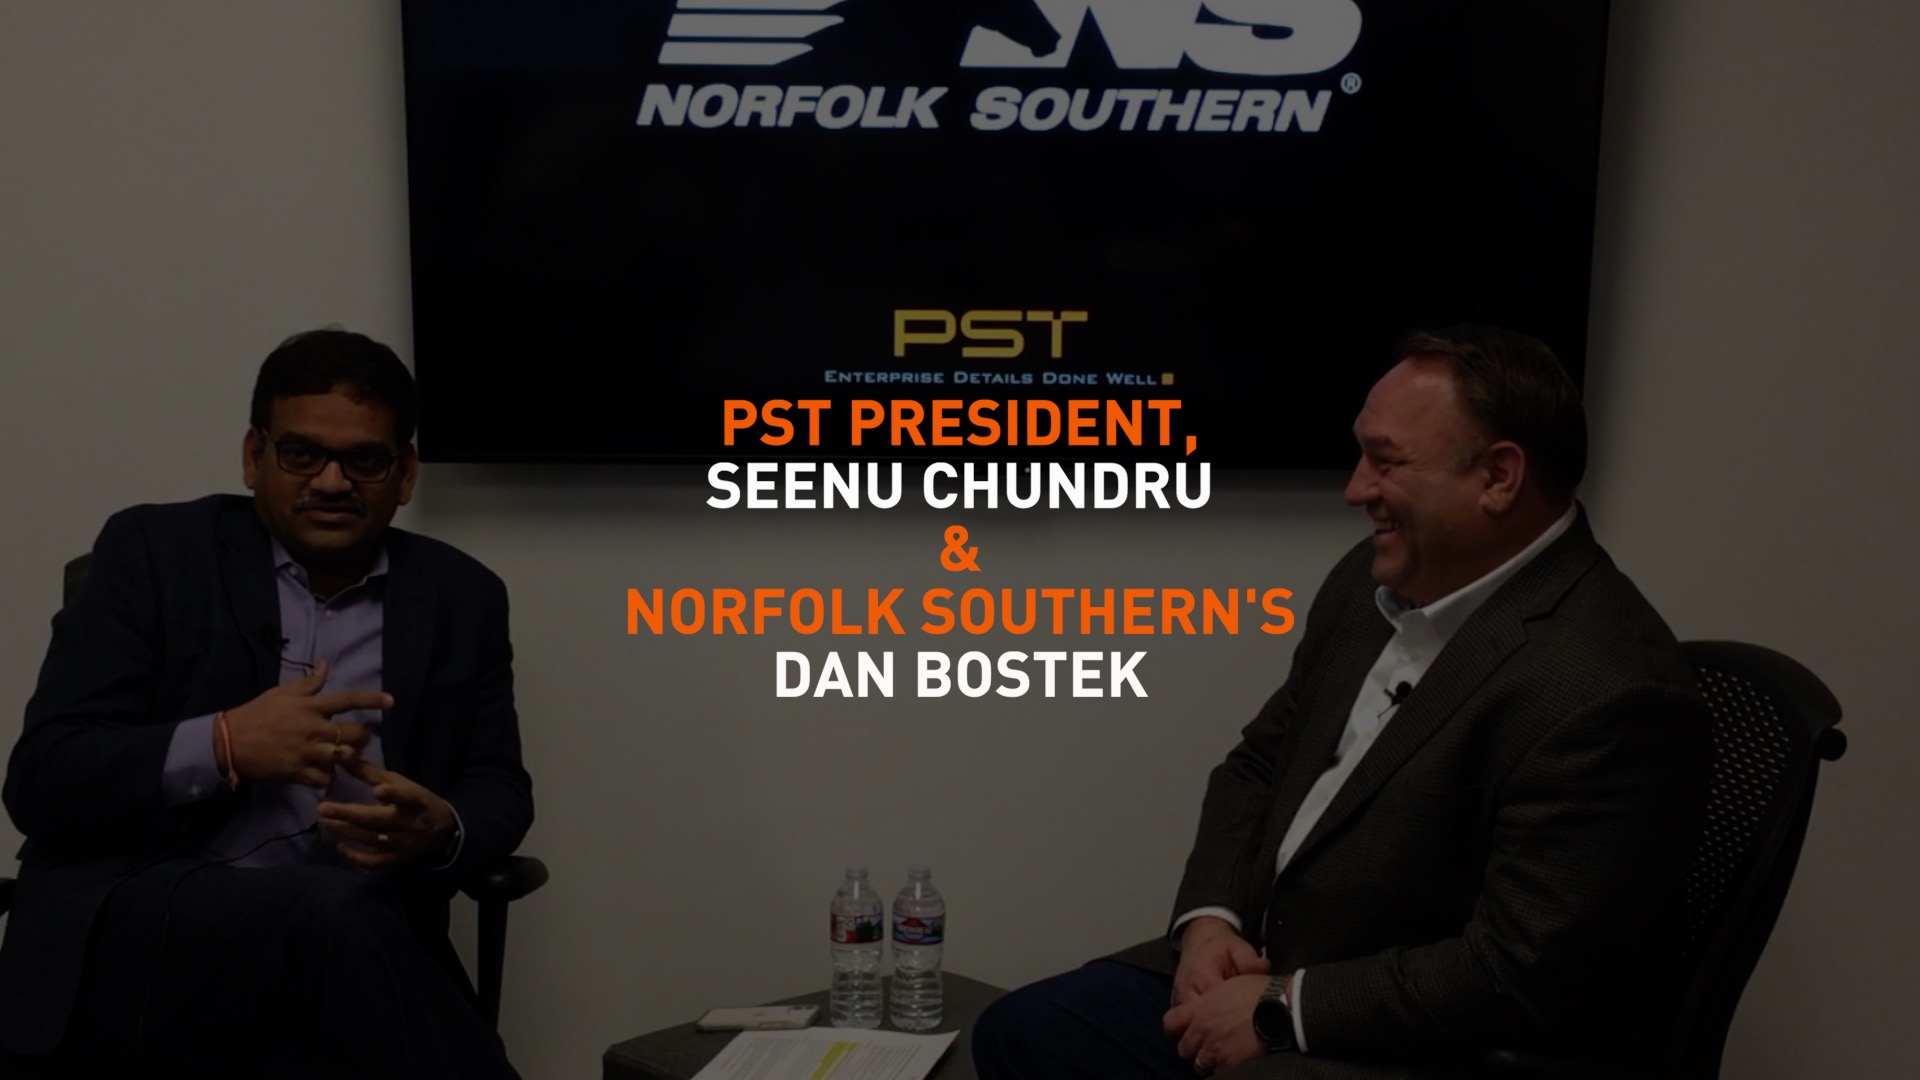 Fireside Chat with Norfolk Southern's Dan Bostek and PST's Seenu Chundru